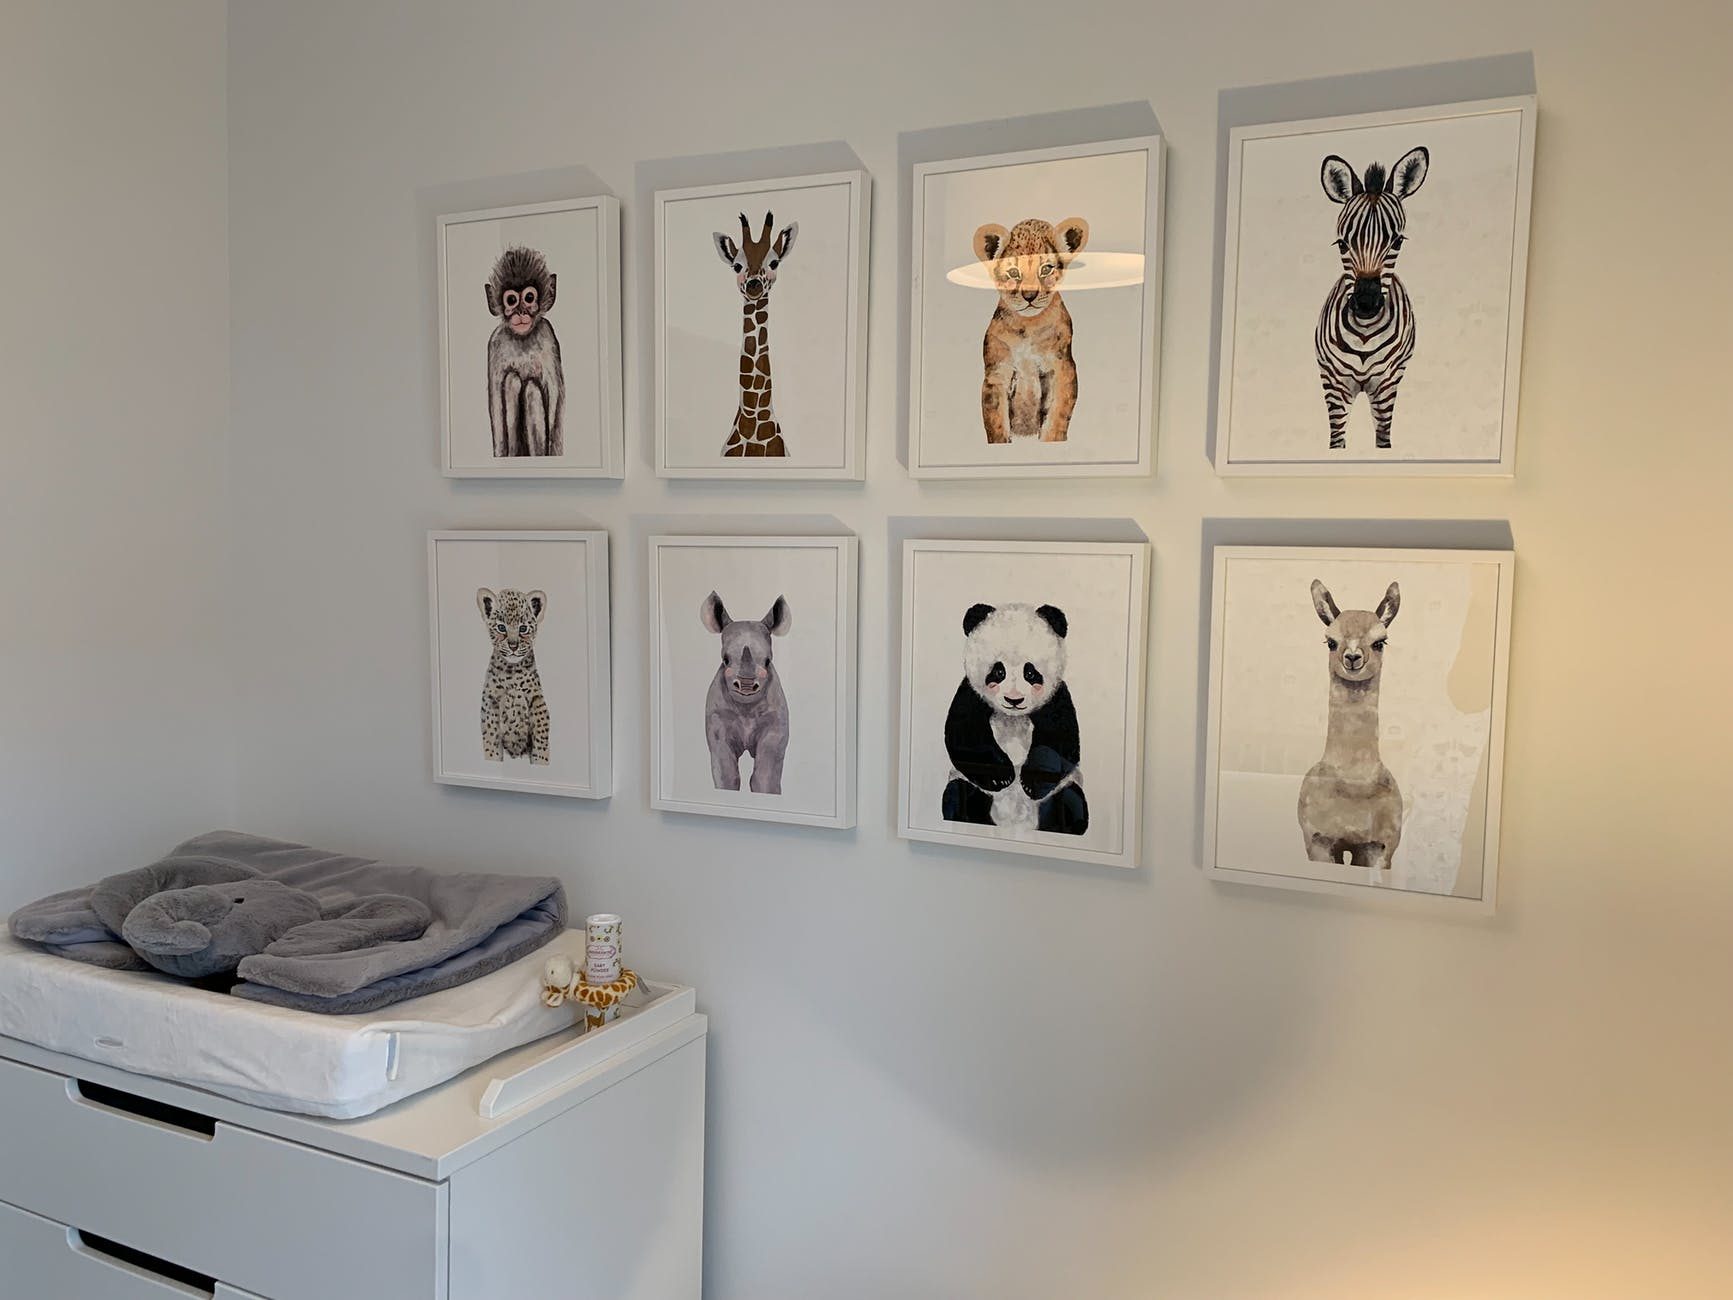 Prints Charming Custom Framing Toronto - Roncesvalles Ave